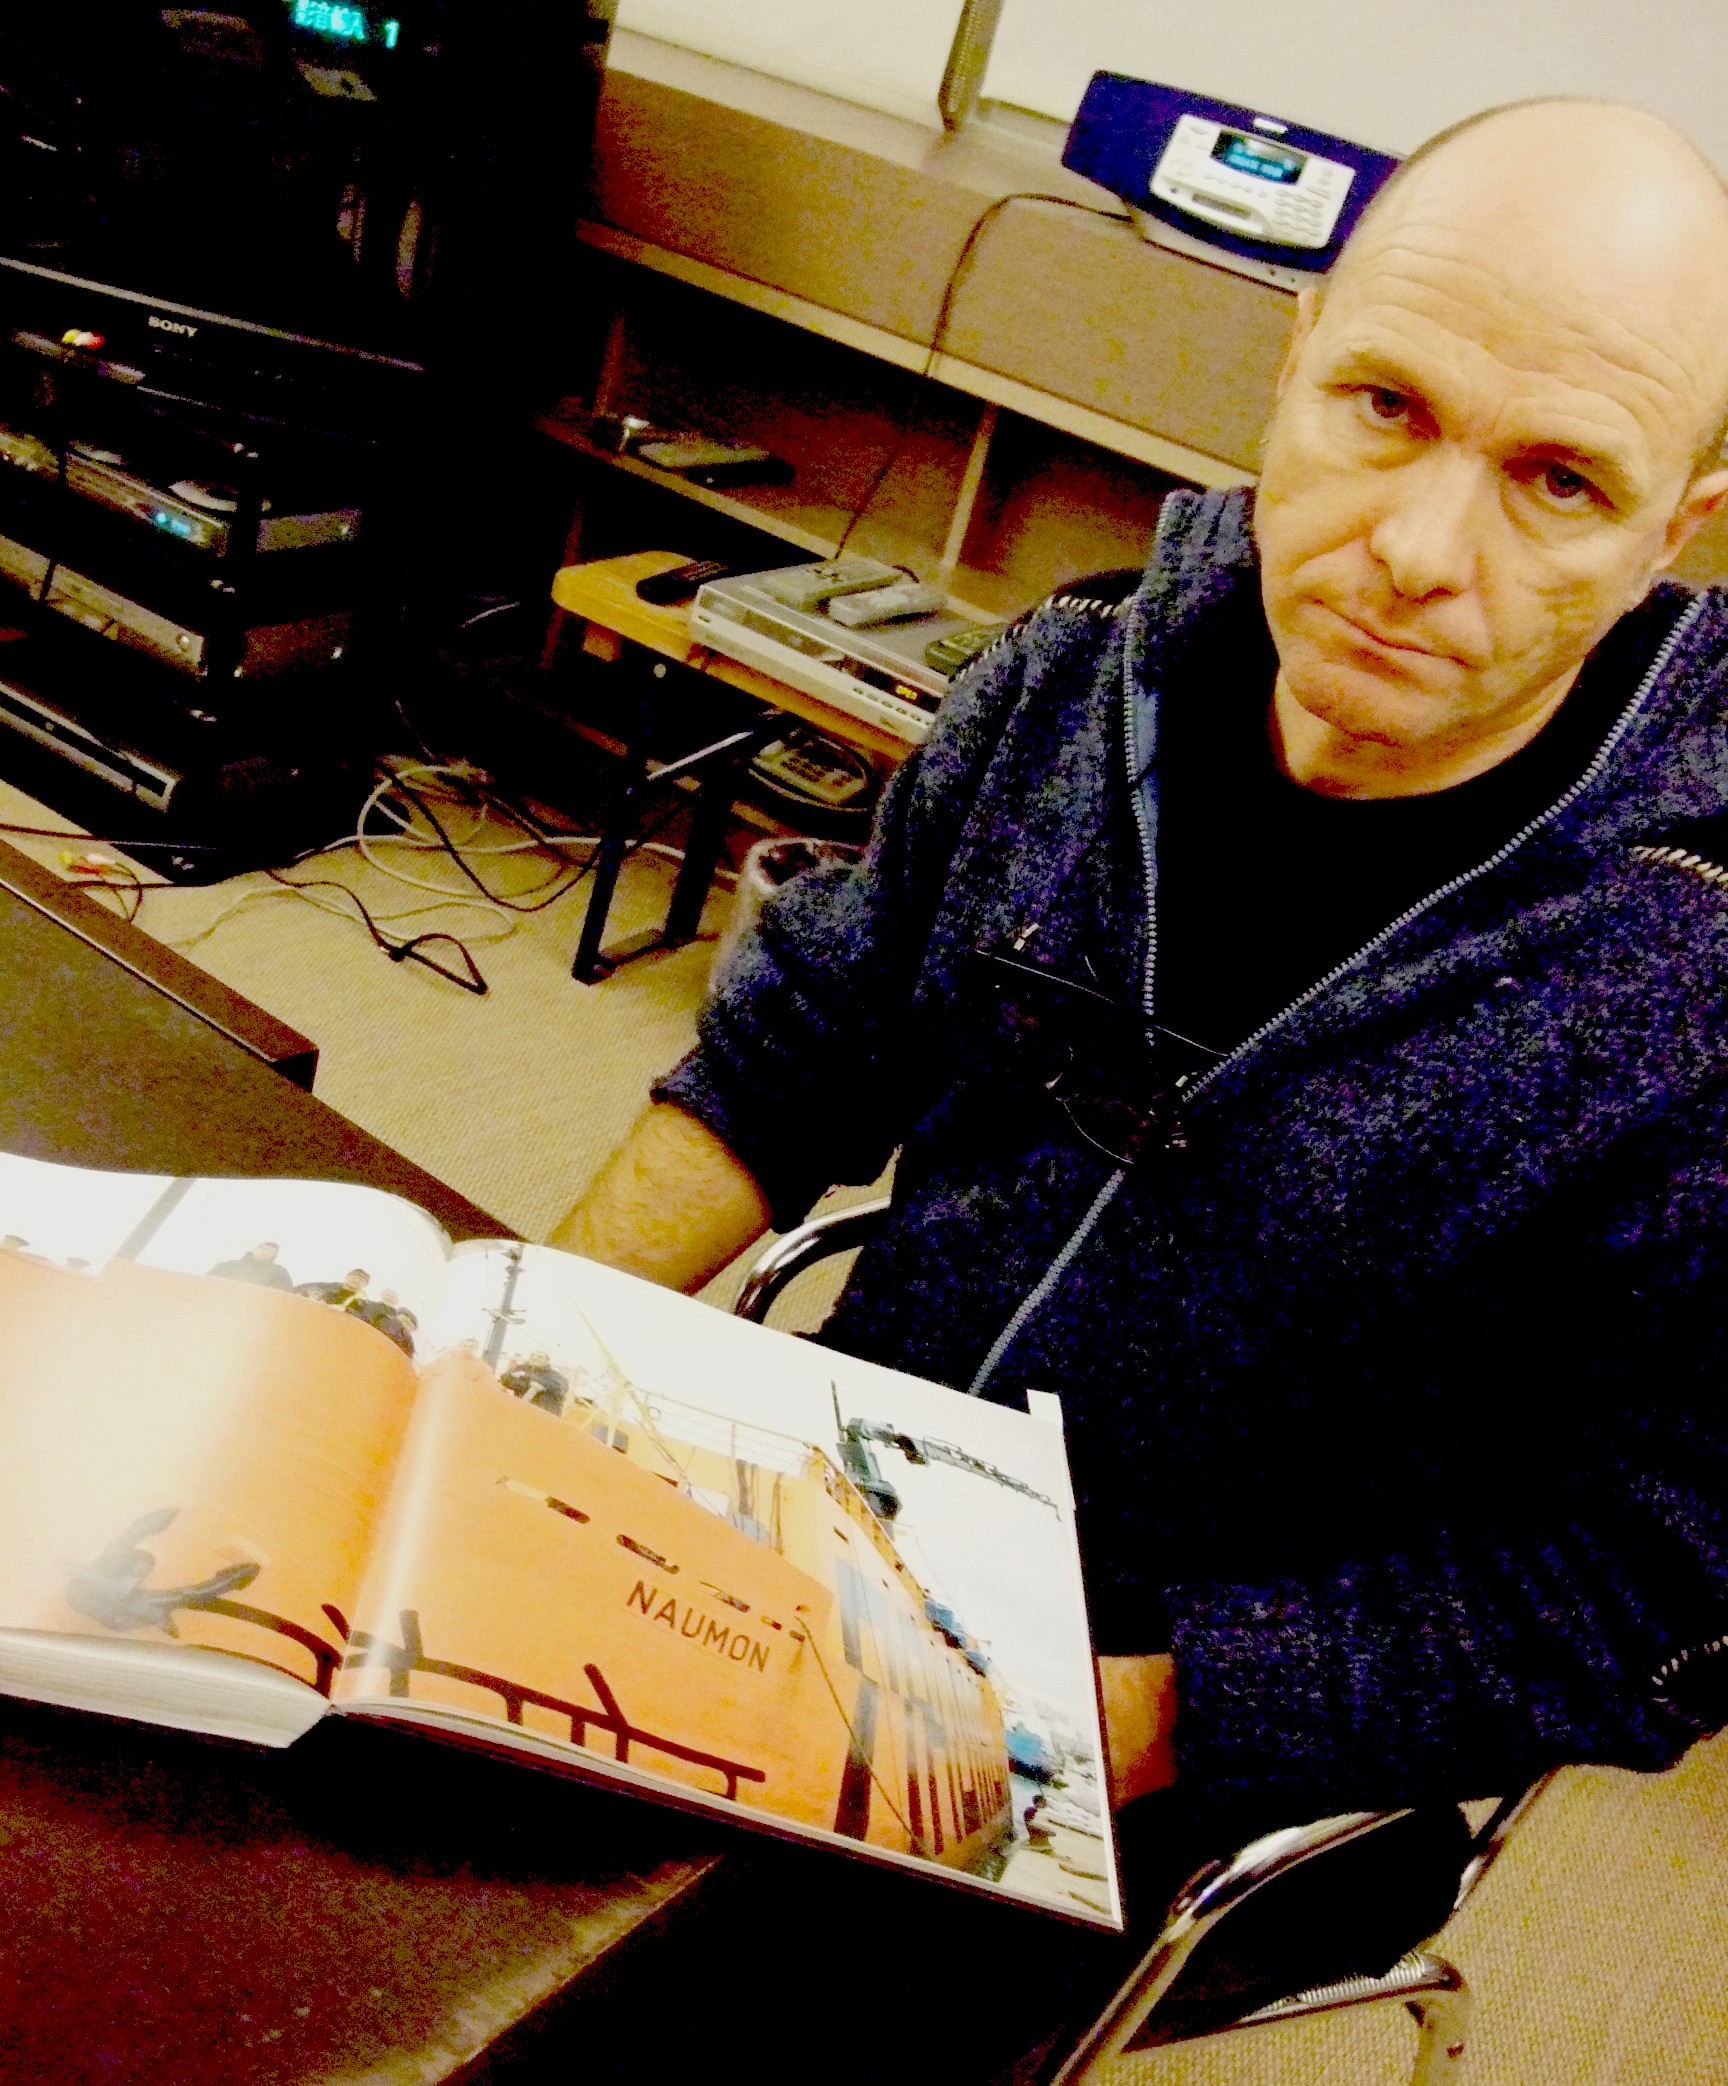 """Carlus Padrissa of La Fura dels Baus shows a book with a picture of the ship """"Naumon."""""""